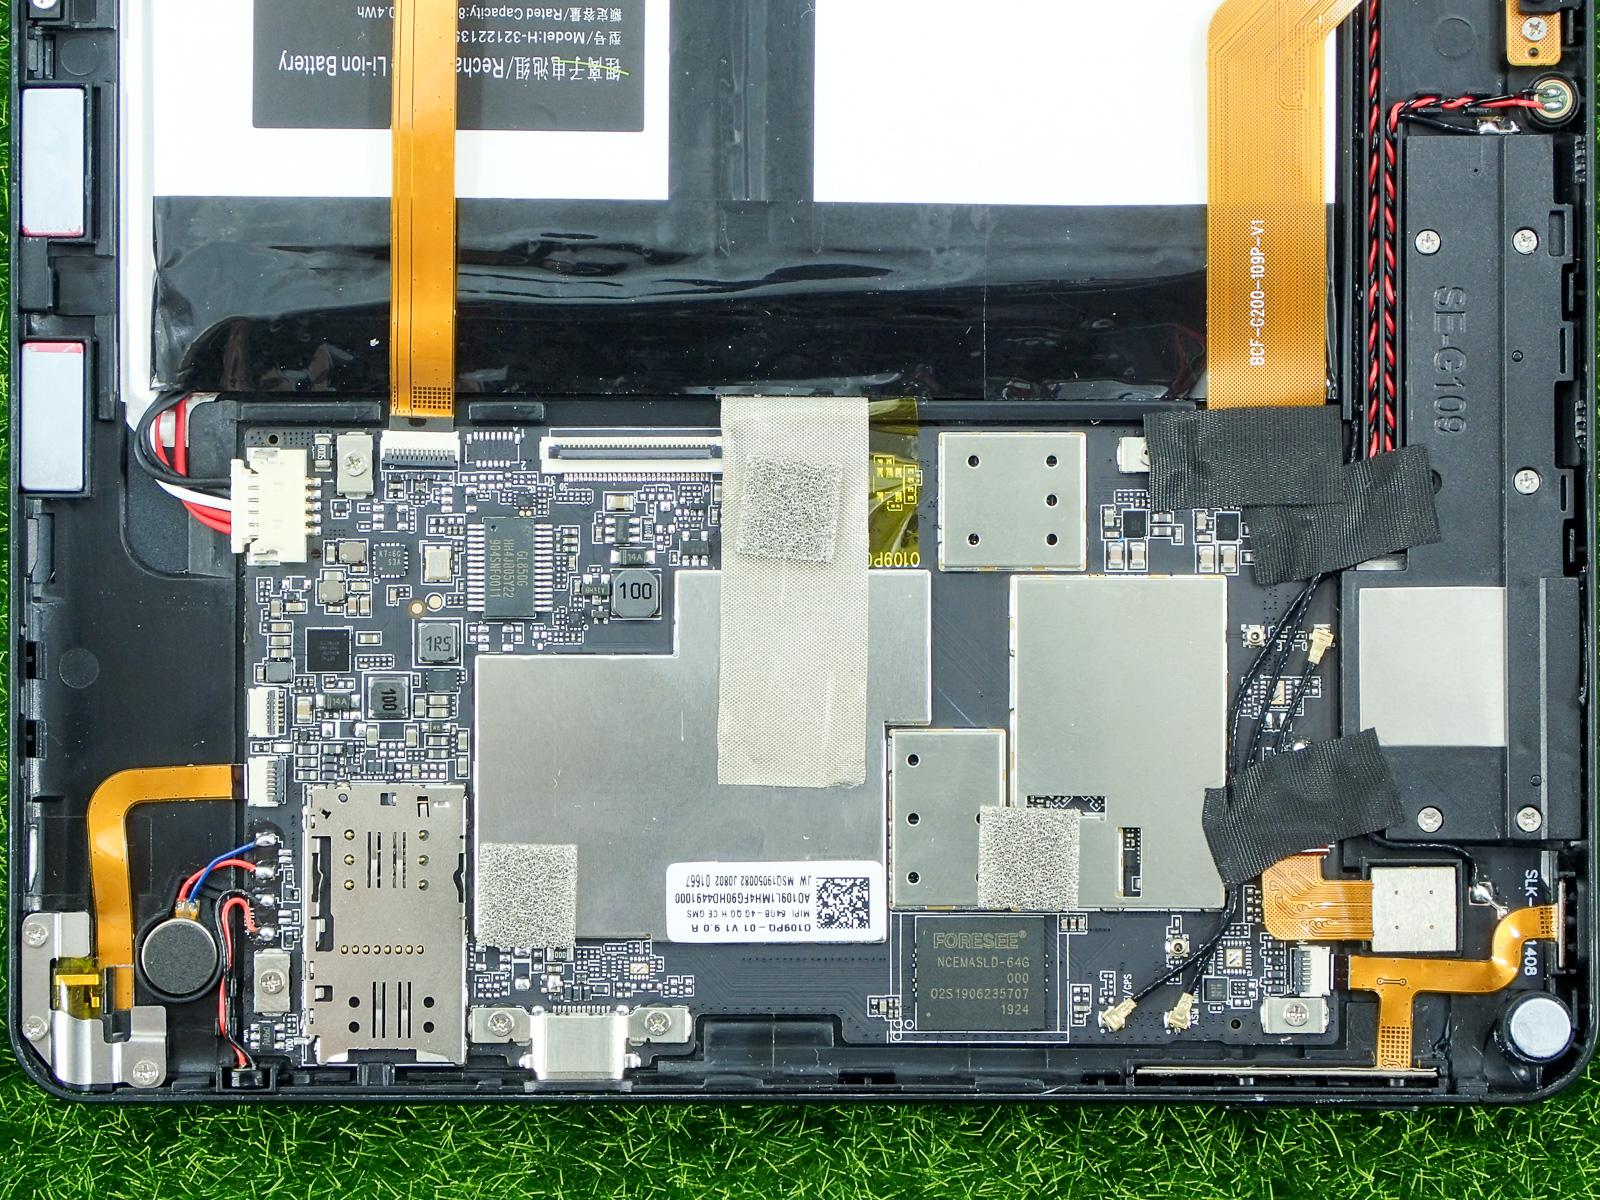 2C8110D179C4A4276FF0D2B9F78FDC56 - Is Teclast T30 worth it? Check out this teardown review!